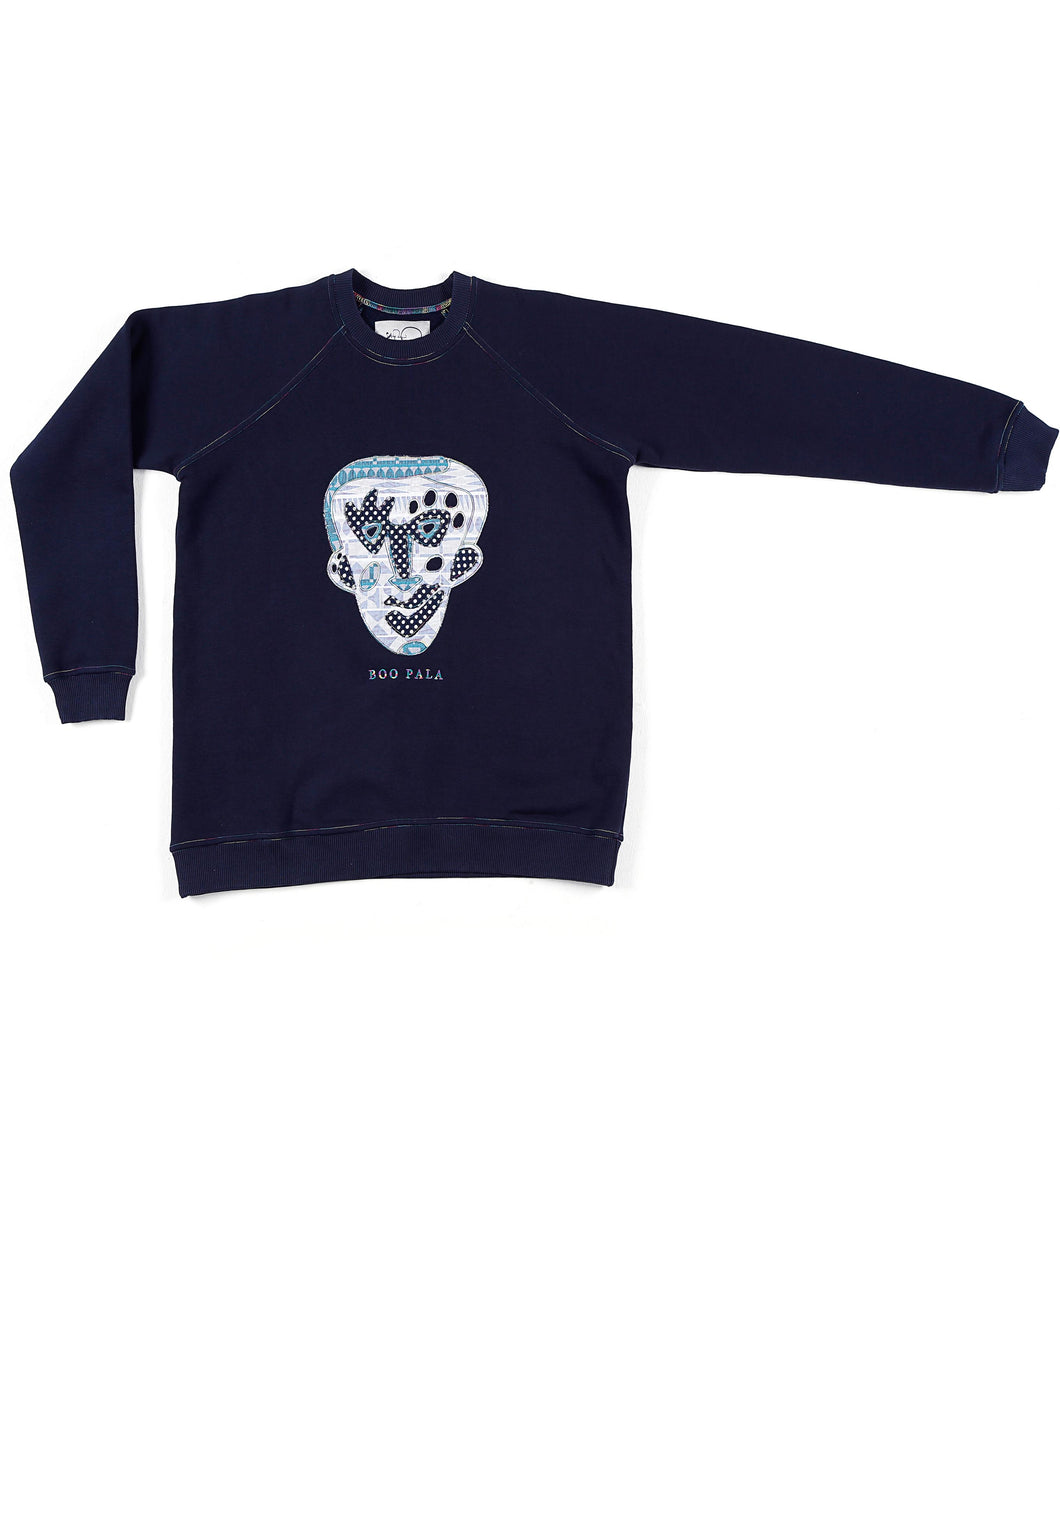 JANE DOE SWEATSHIRT - NAVY - BOO PALA LONDON